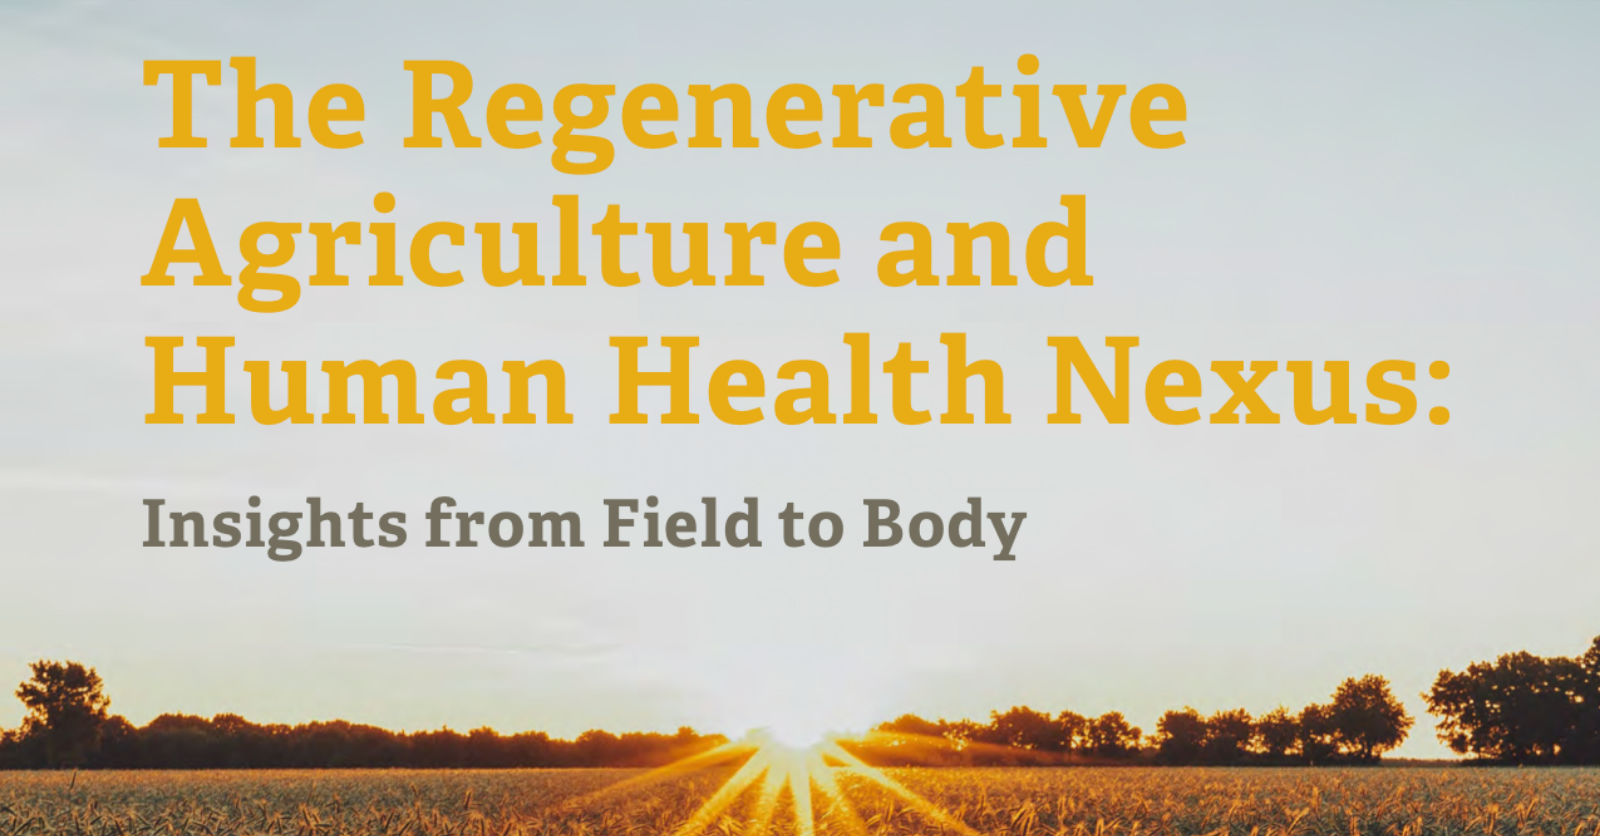 New Report on the Regenerative Agriculture and Human Health Nexus